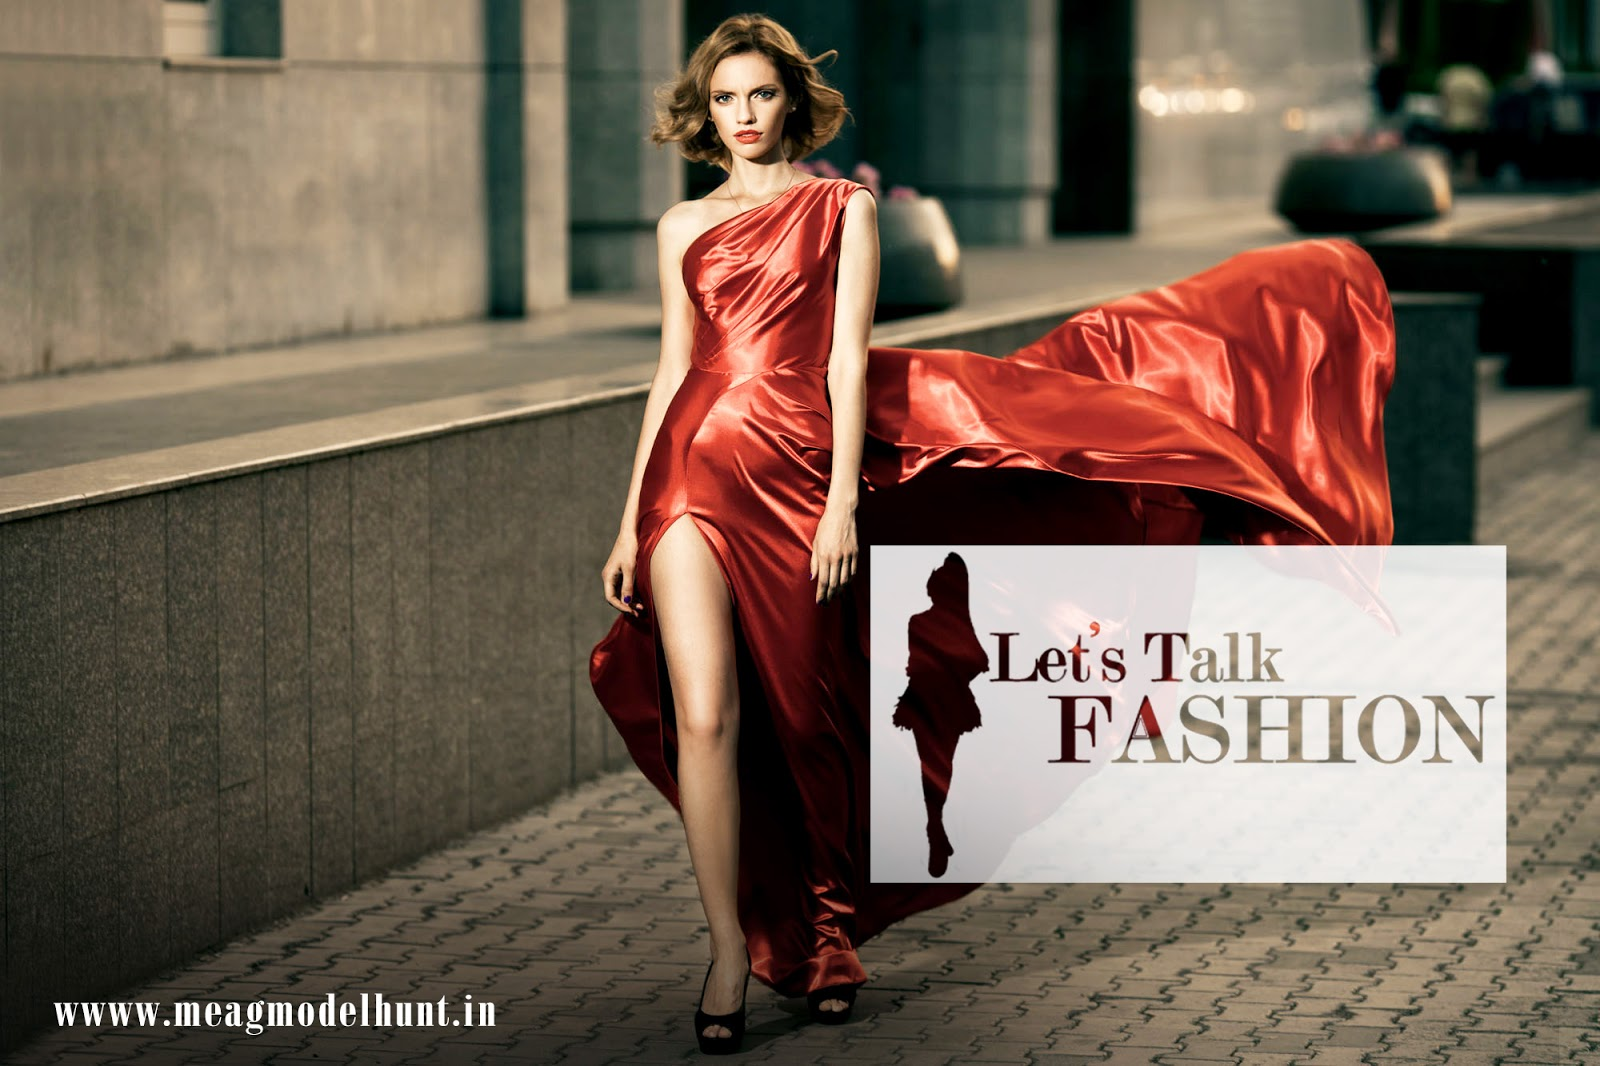 DIGITAL FASHION PRO - Digital Fashion Pro Fashion Design Are you interested in fashion